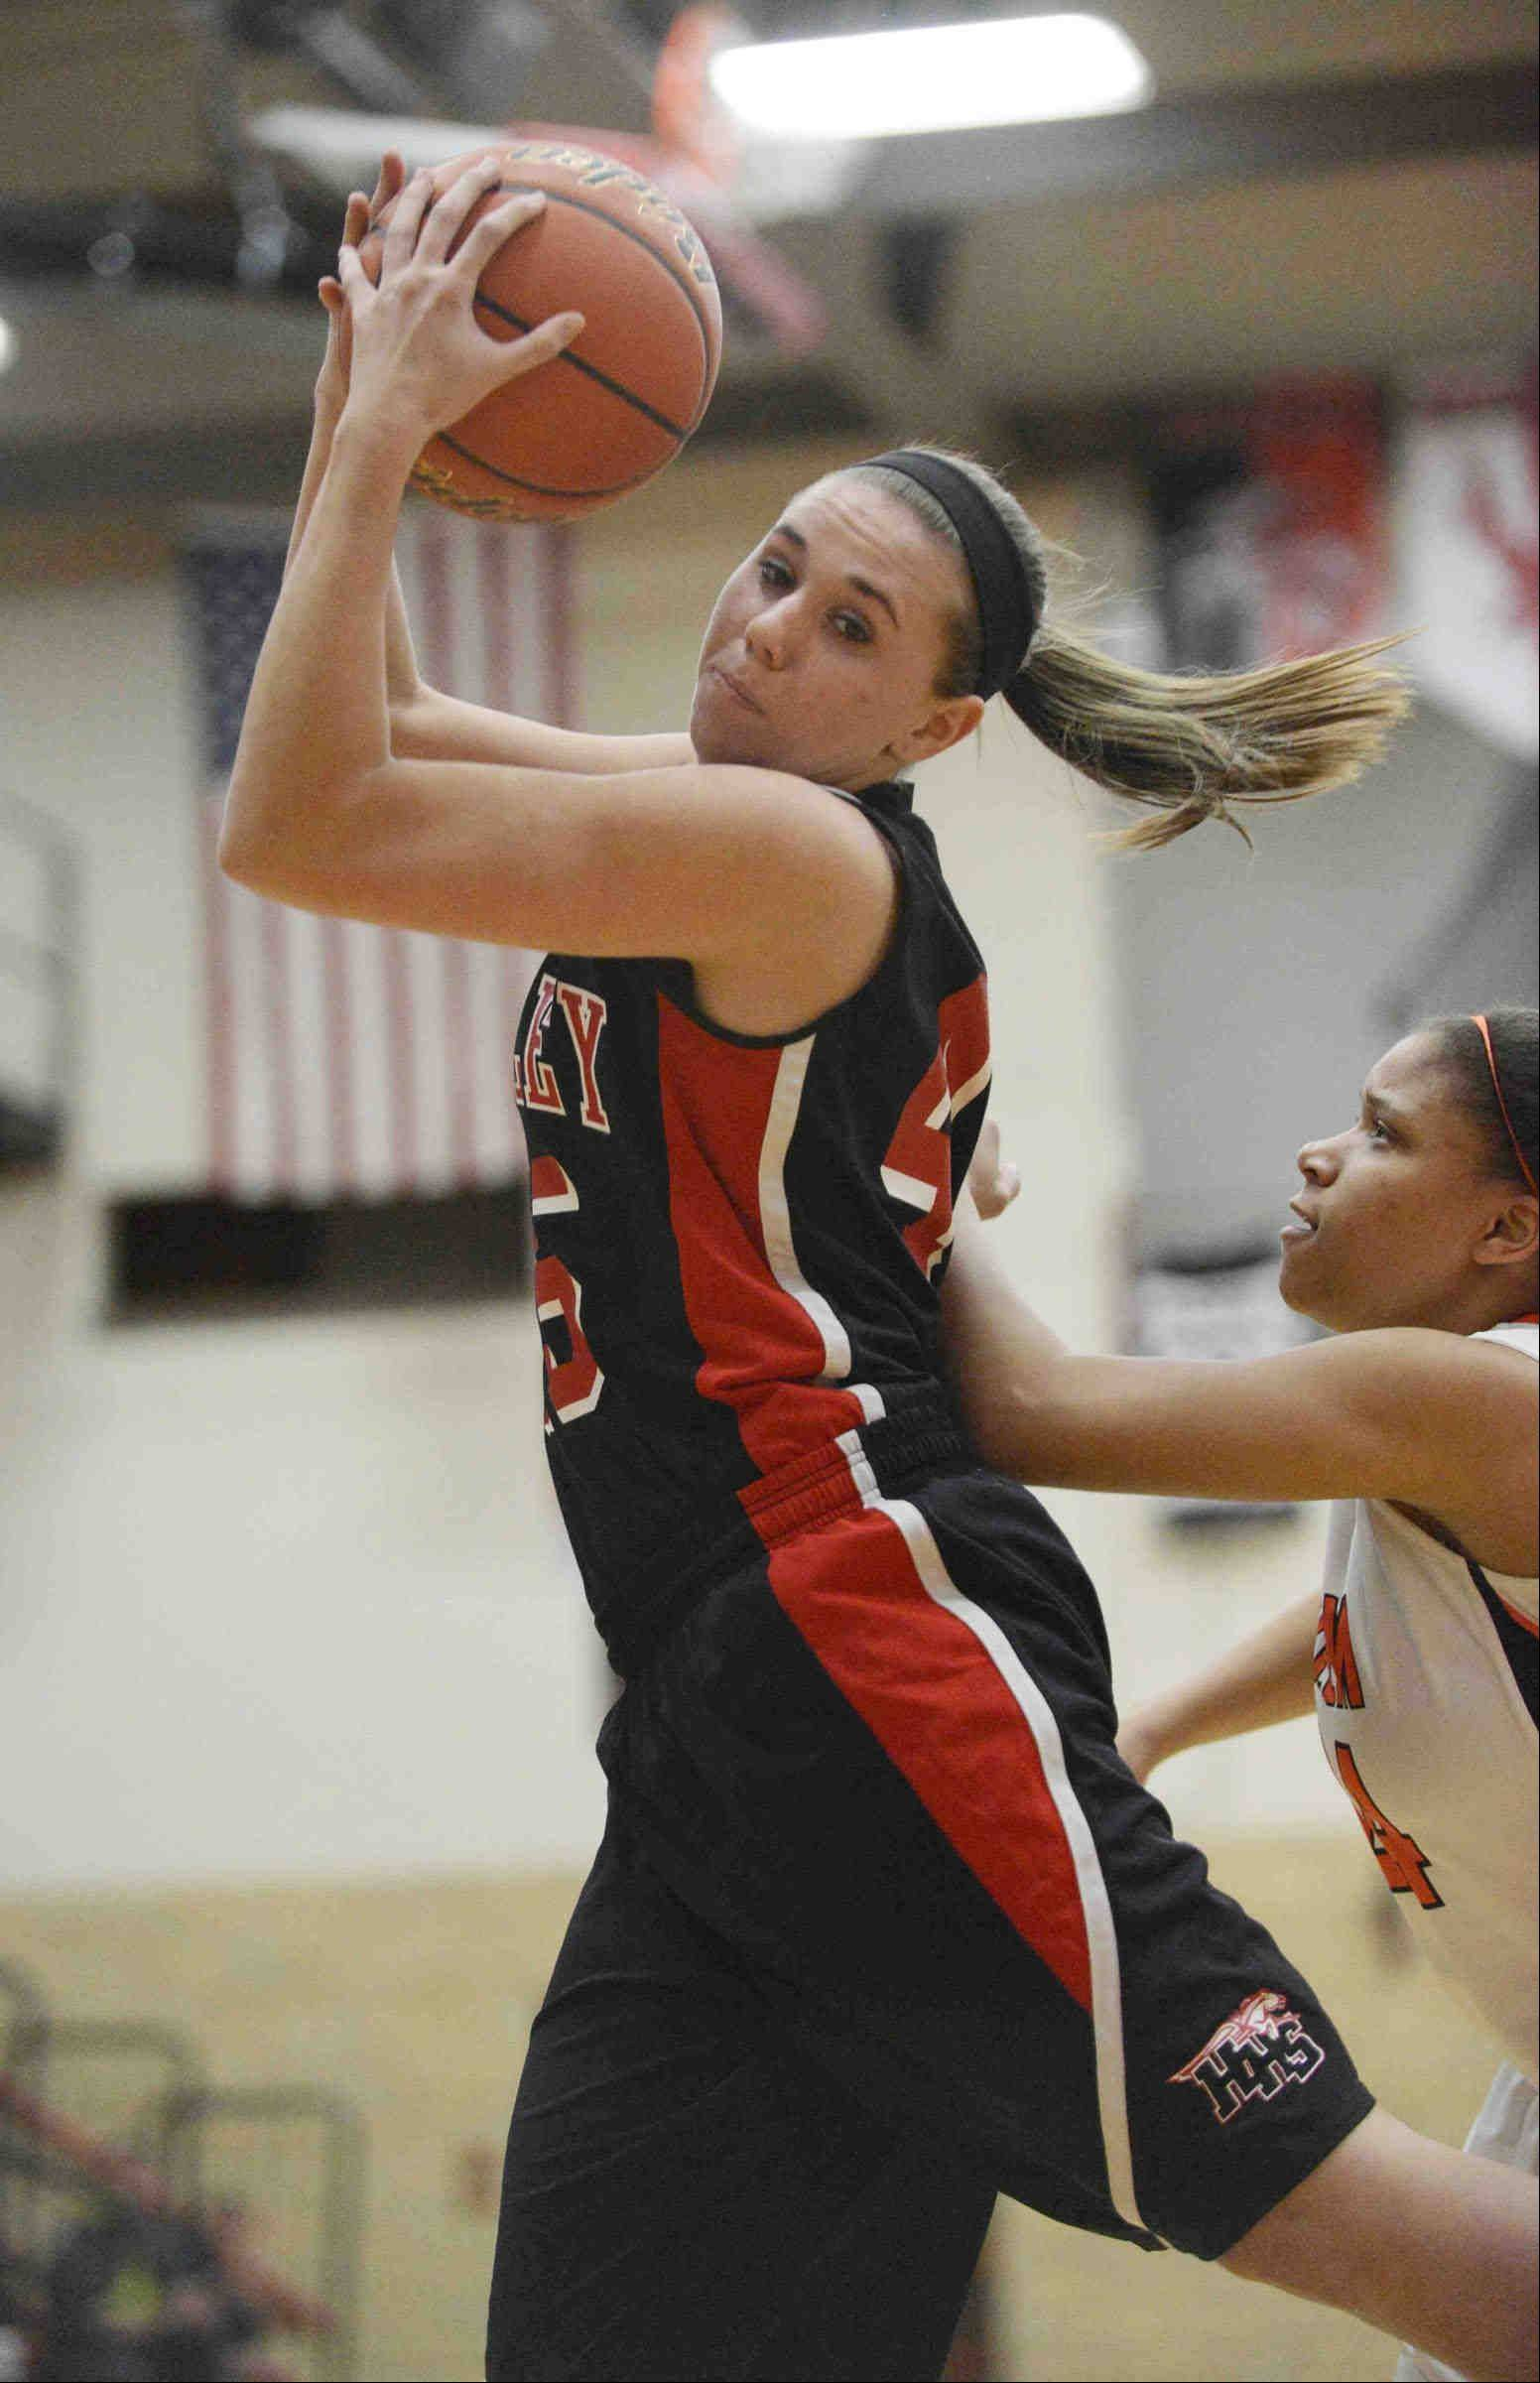 Images from the Huntley vs. Harlem girls Class 4A sectional basketball game in Tuesday, February 19, 2013 in Rockford.